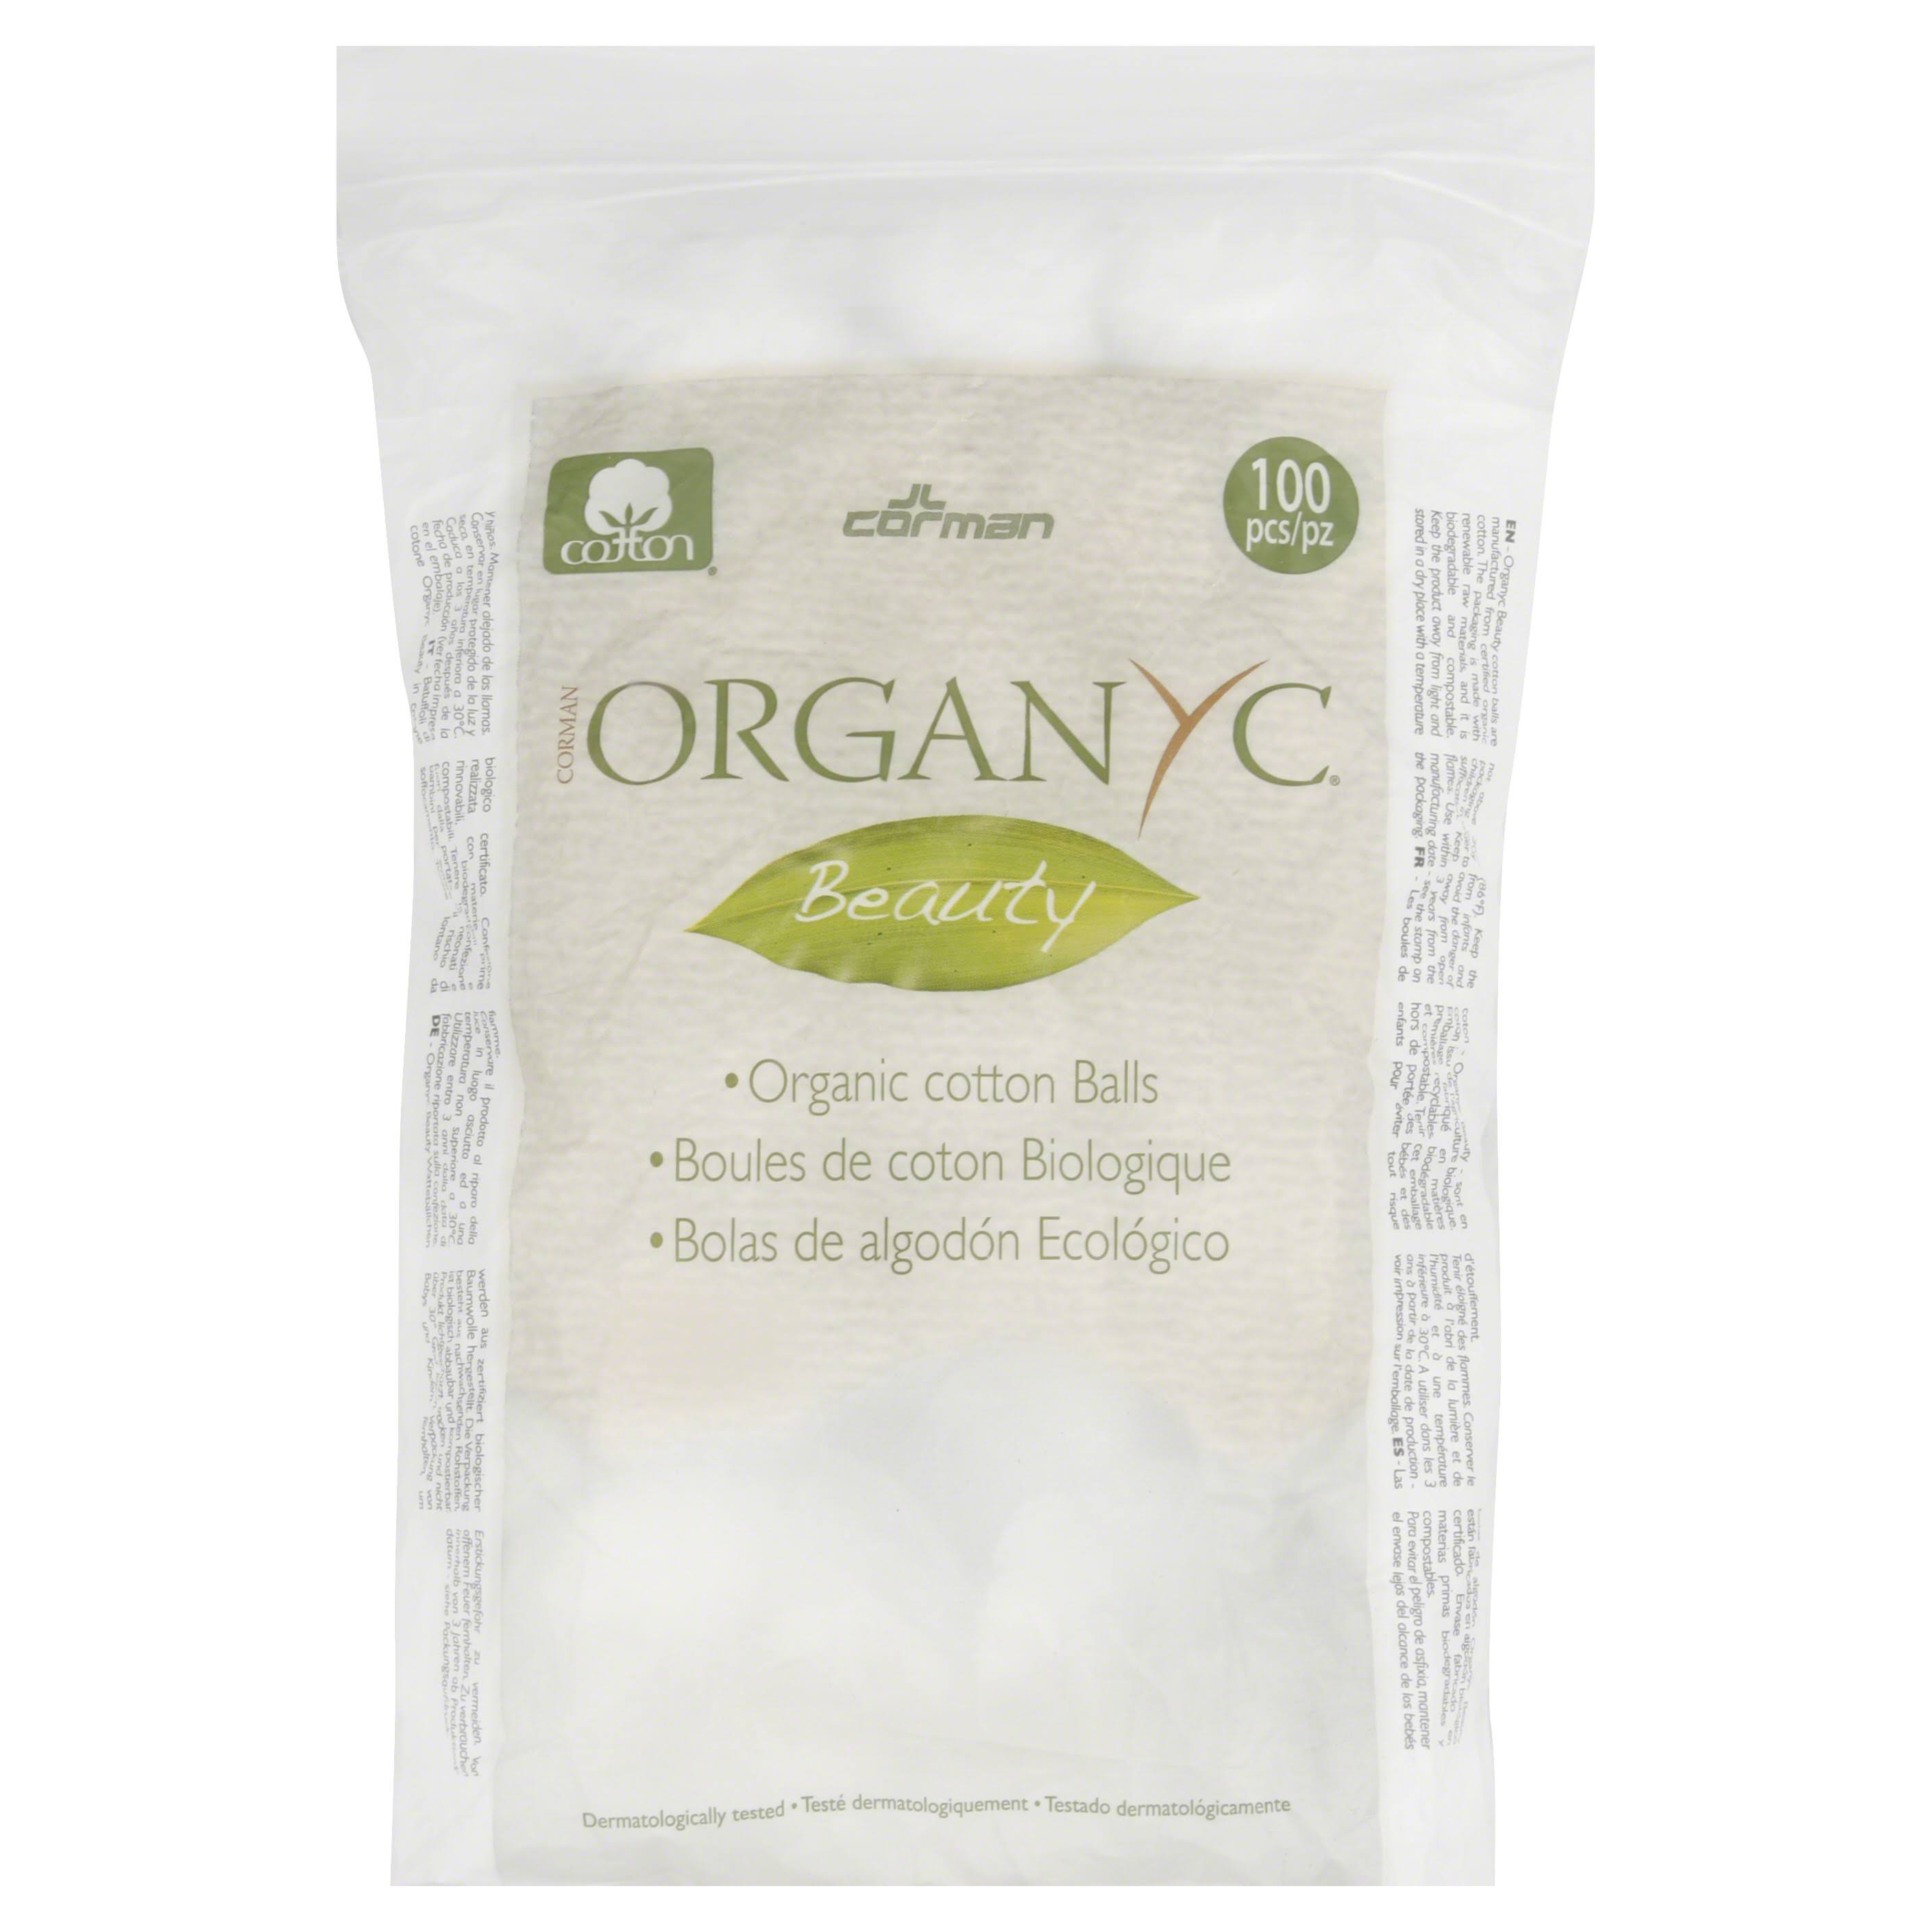 Organyc Beauty Cotton Balls, Organic - 100 pieces